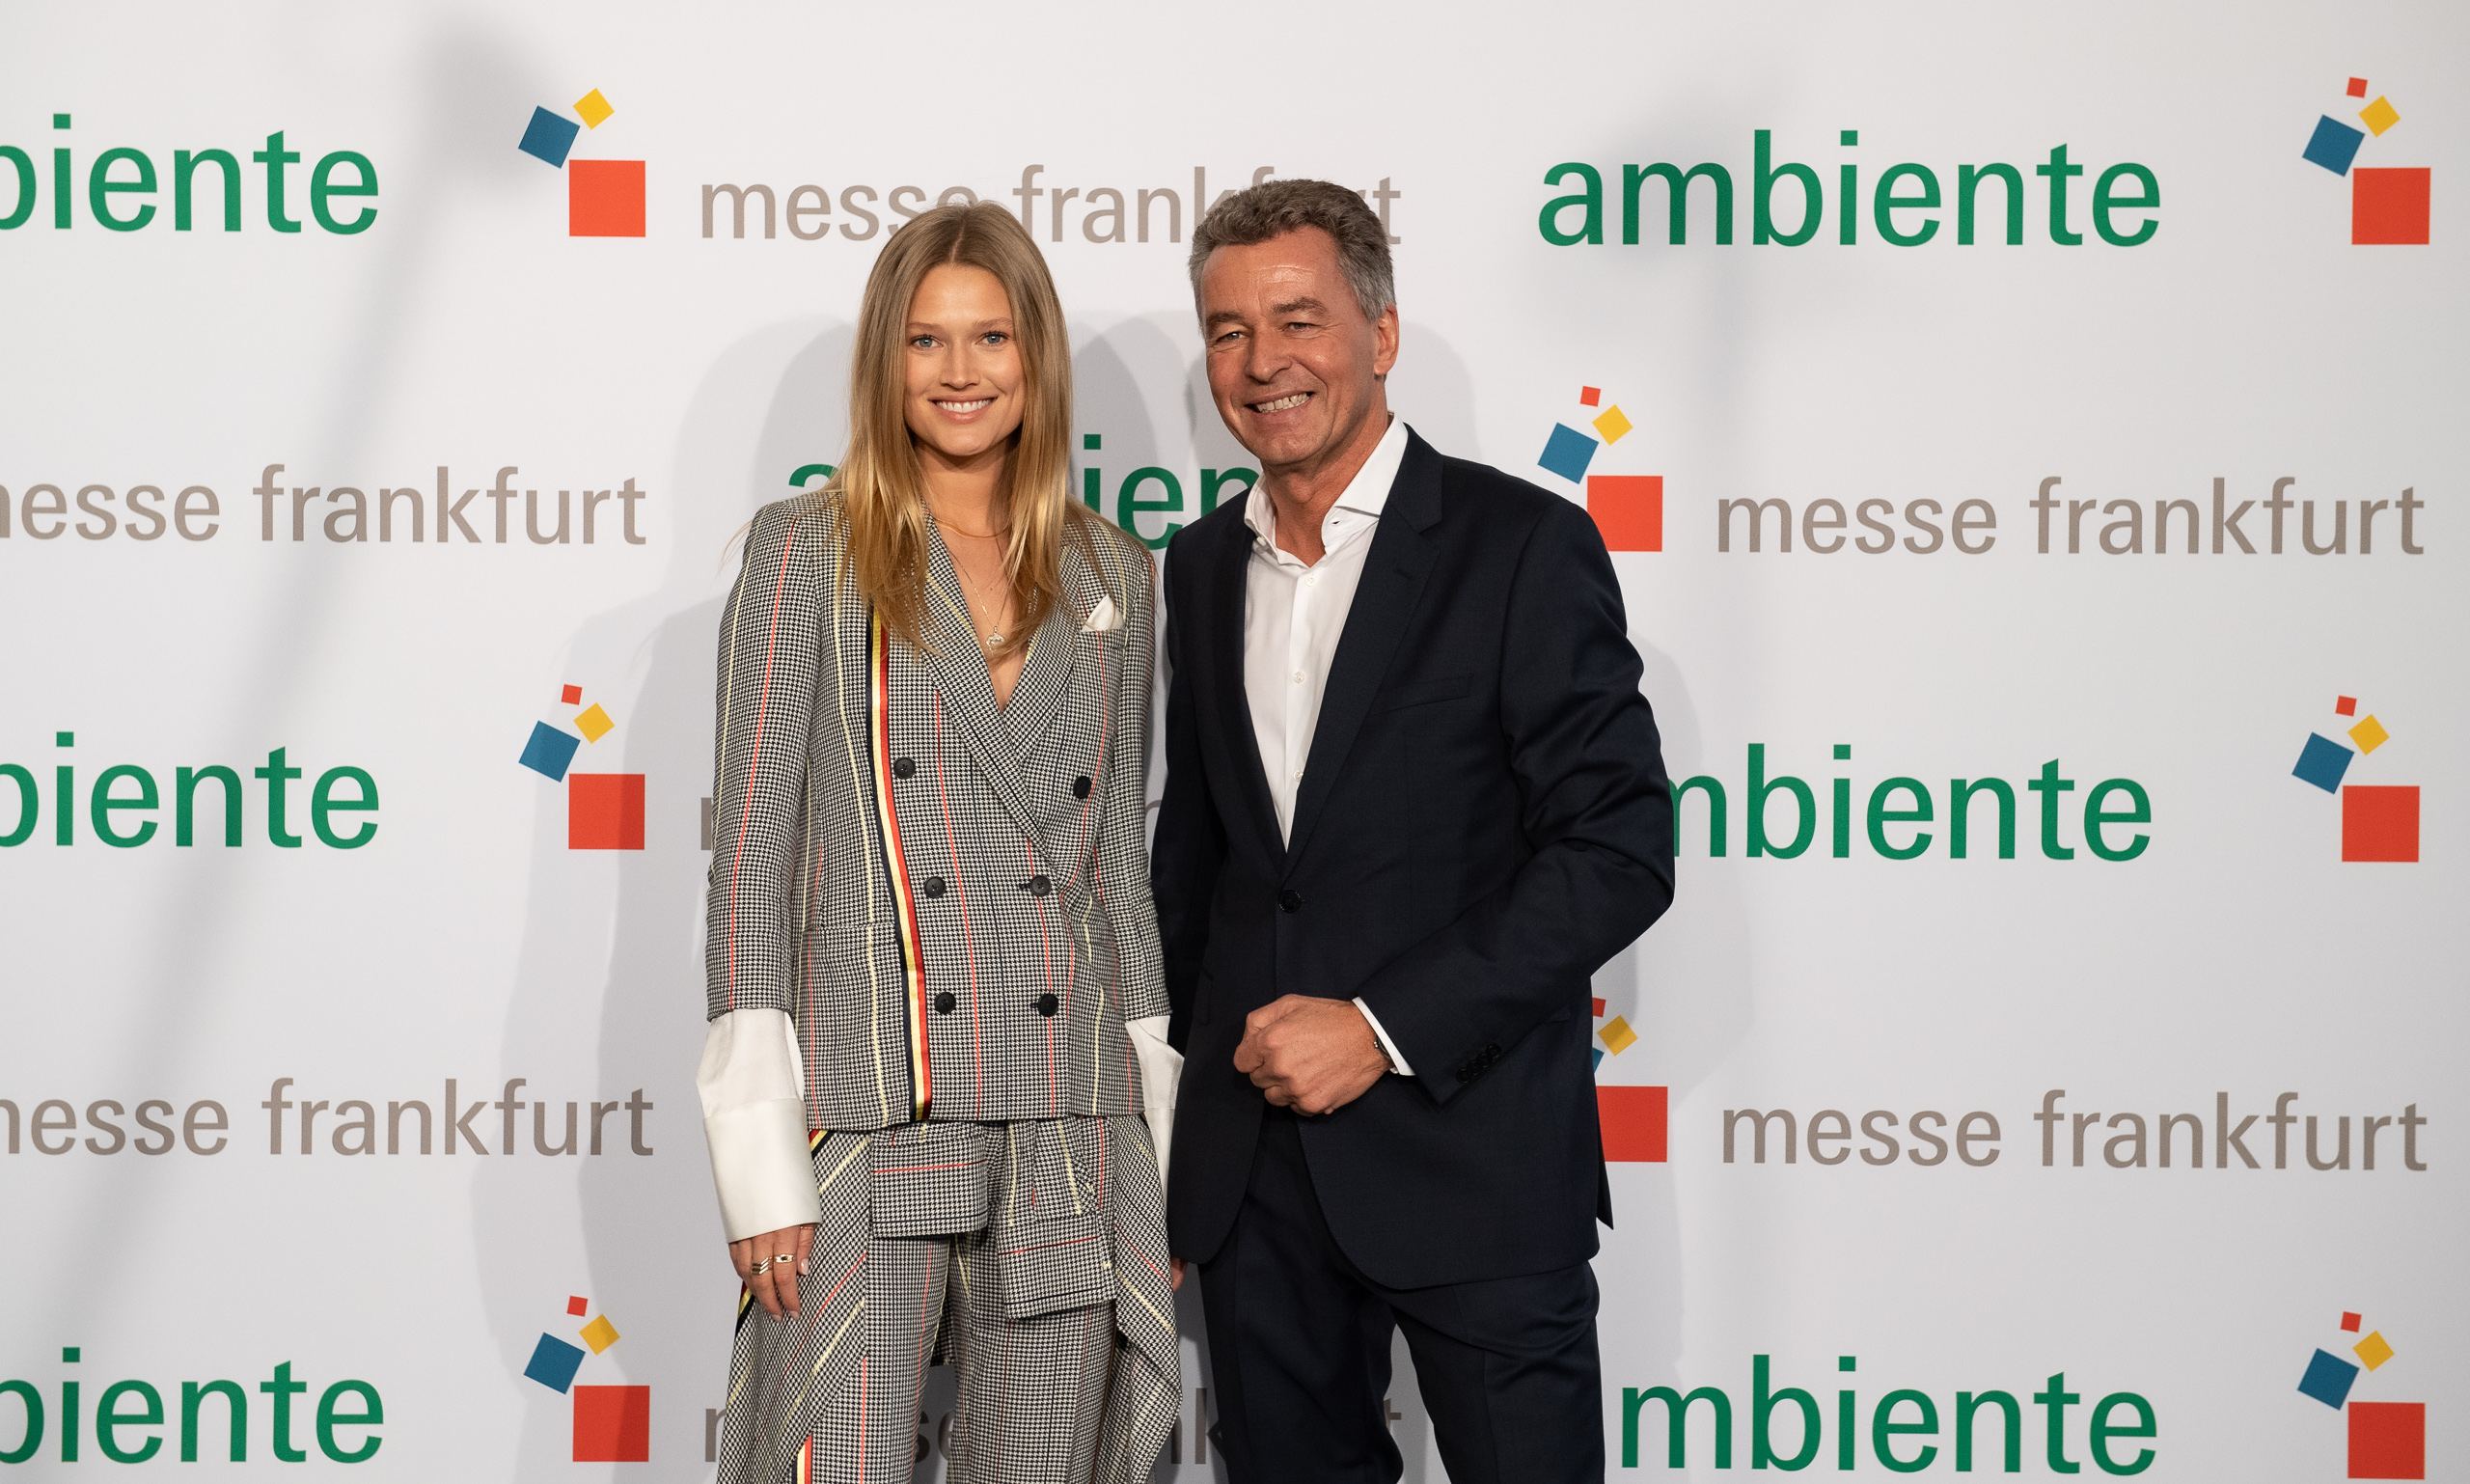 Toni Garrn visiting Ambiente (from left to right: Toni Garrn, Detlef Braun, Member of the Executive Board of Messe Frankfurt)